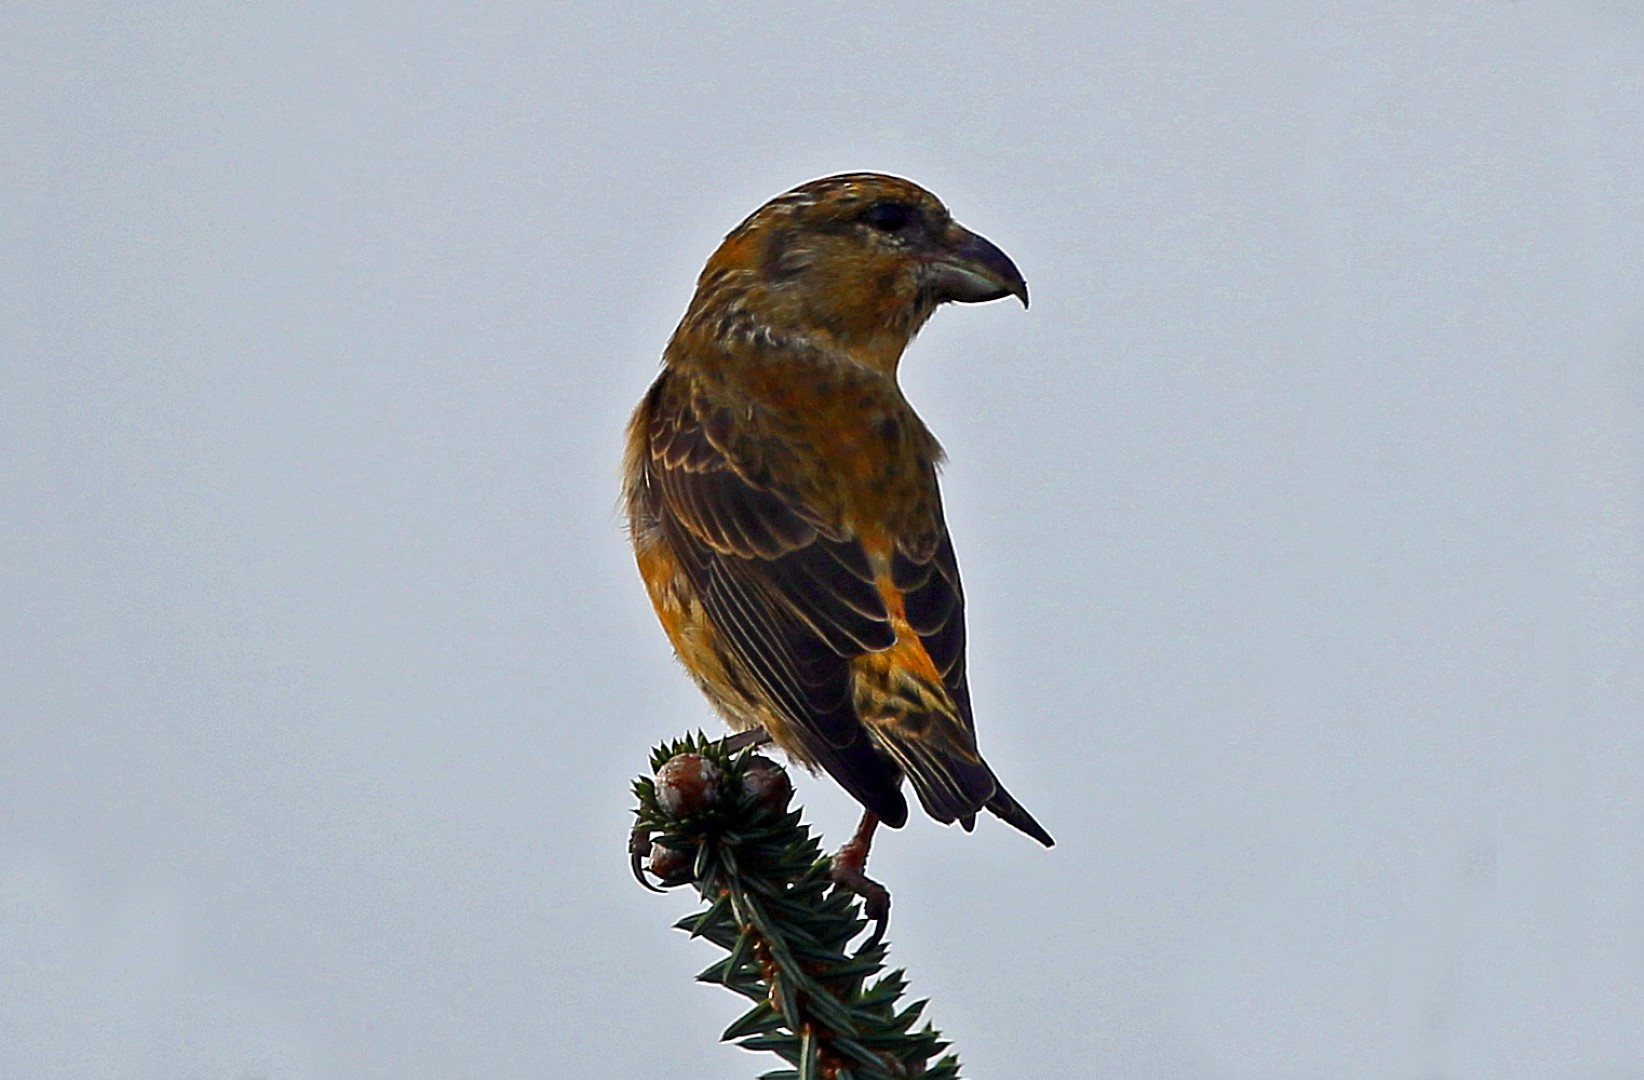 Common Crossbill 08 Nov 2017 (John Donnelly)